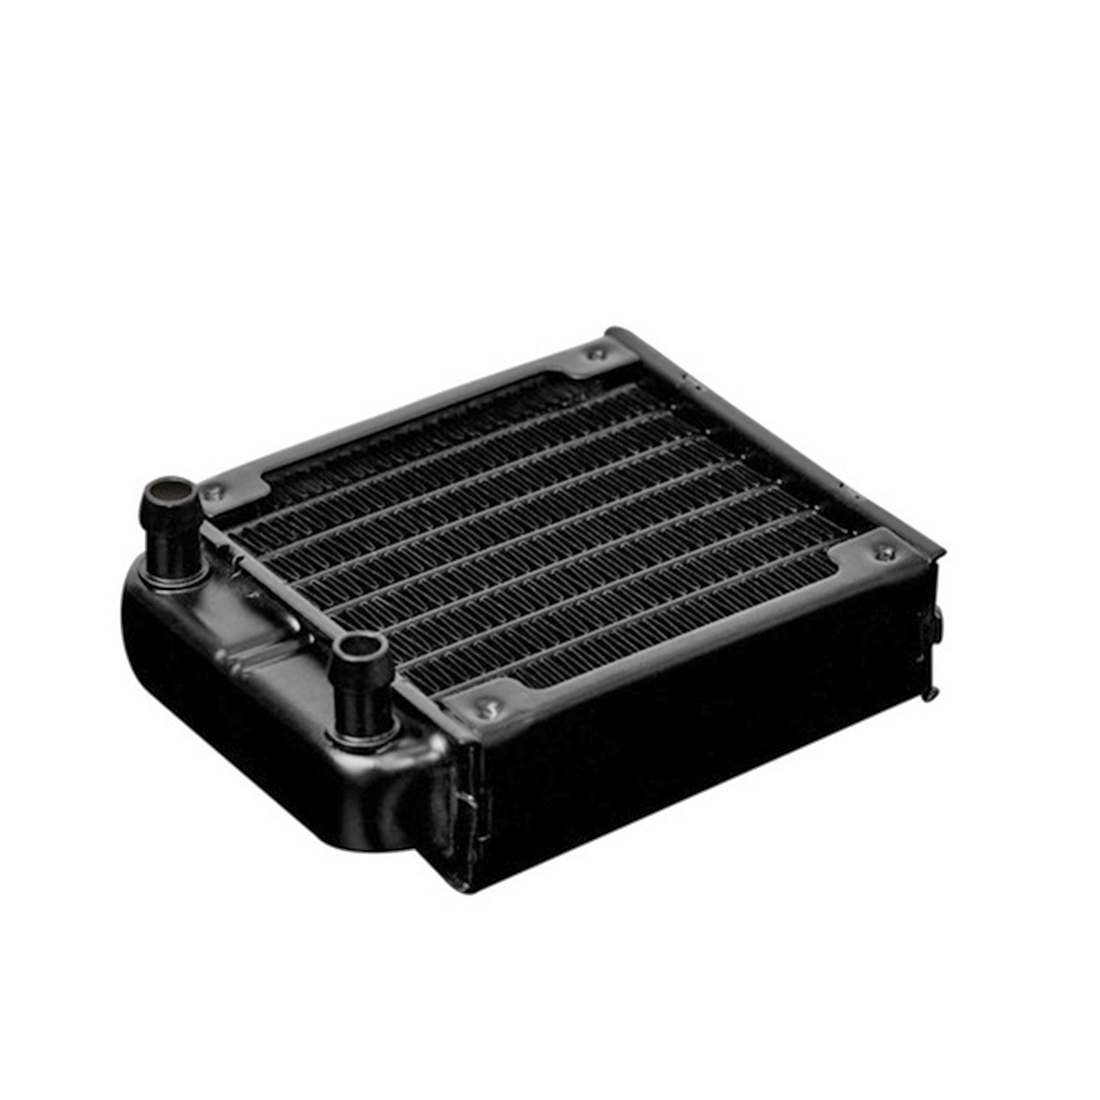 360mm Aluminum Computer Radiator Water Cooler Cooling Heatsink Exchanger Water Cool System For Computer For Children-Black White